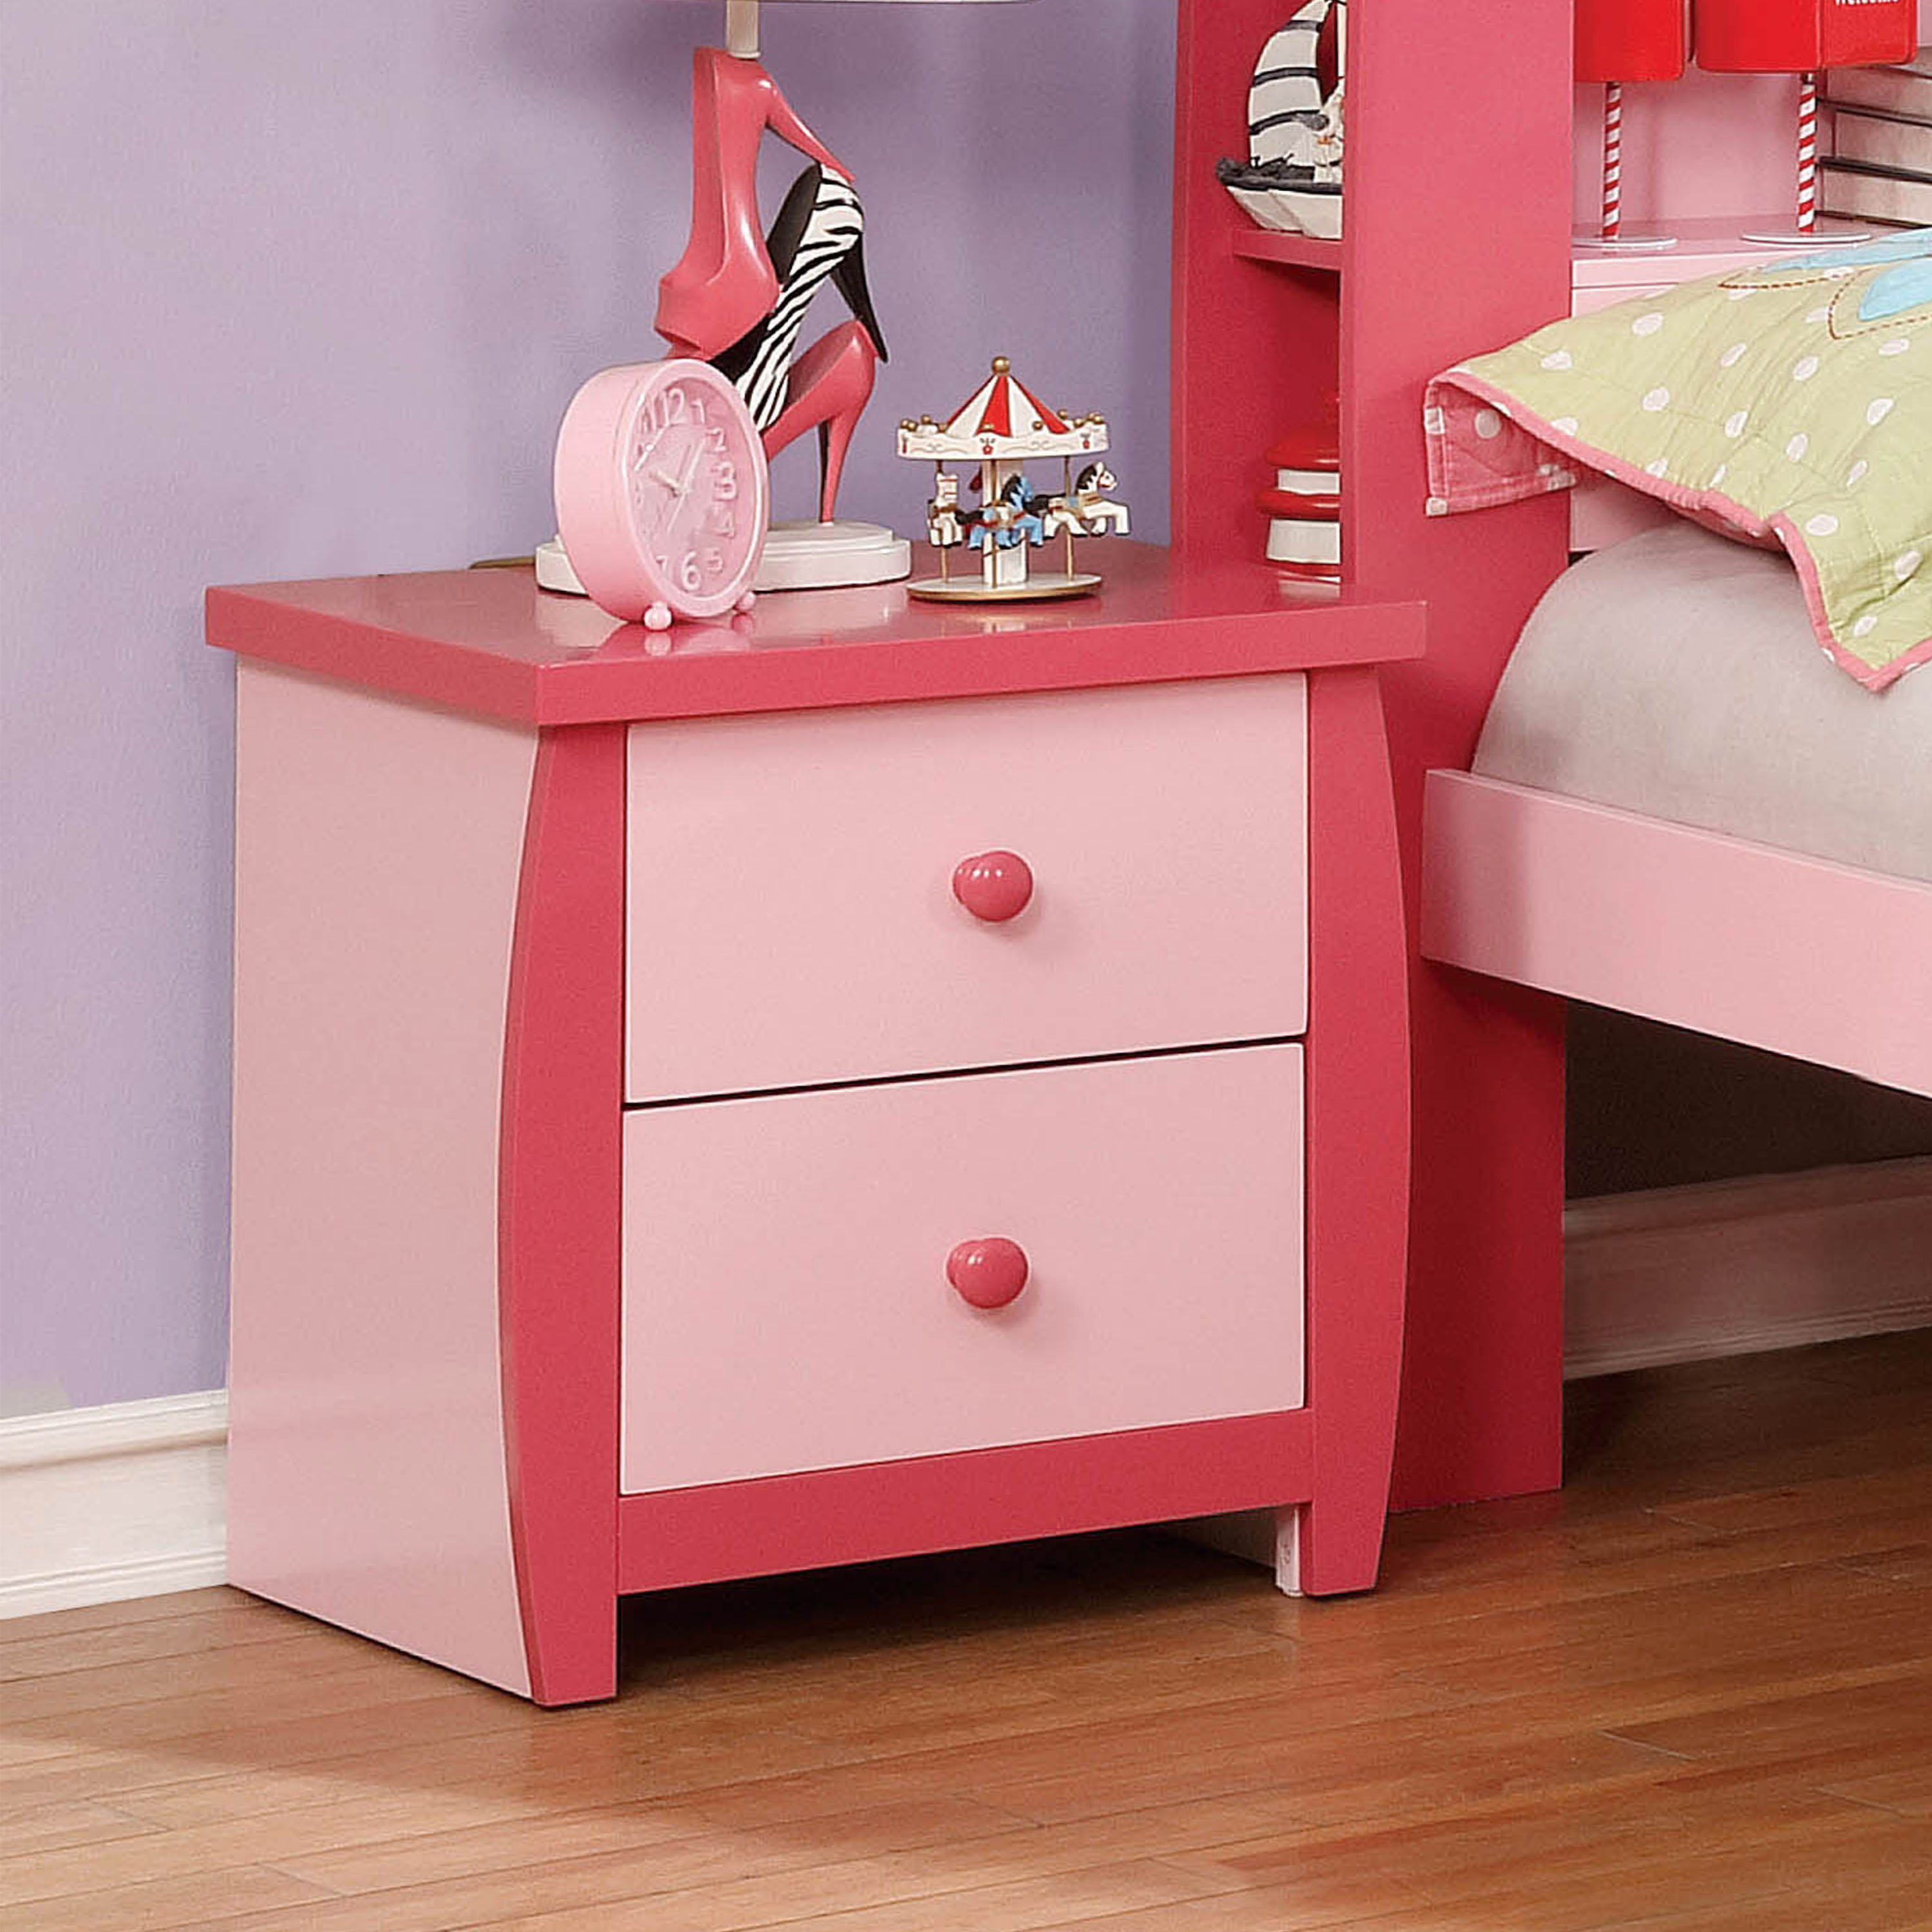 Furniture of America Lucio Pink Nightstand